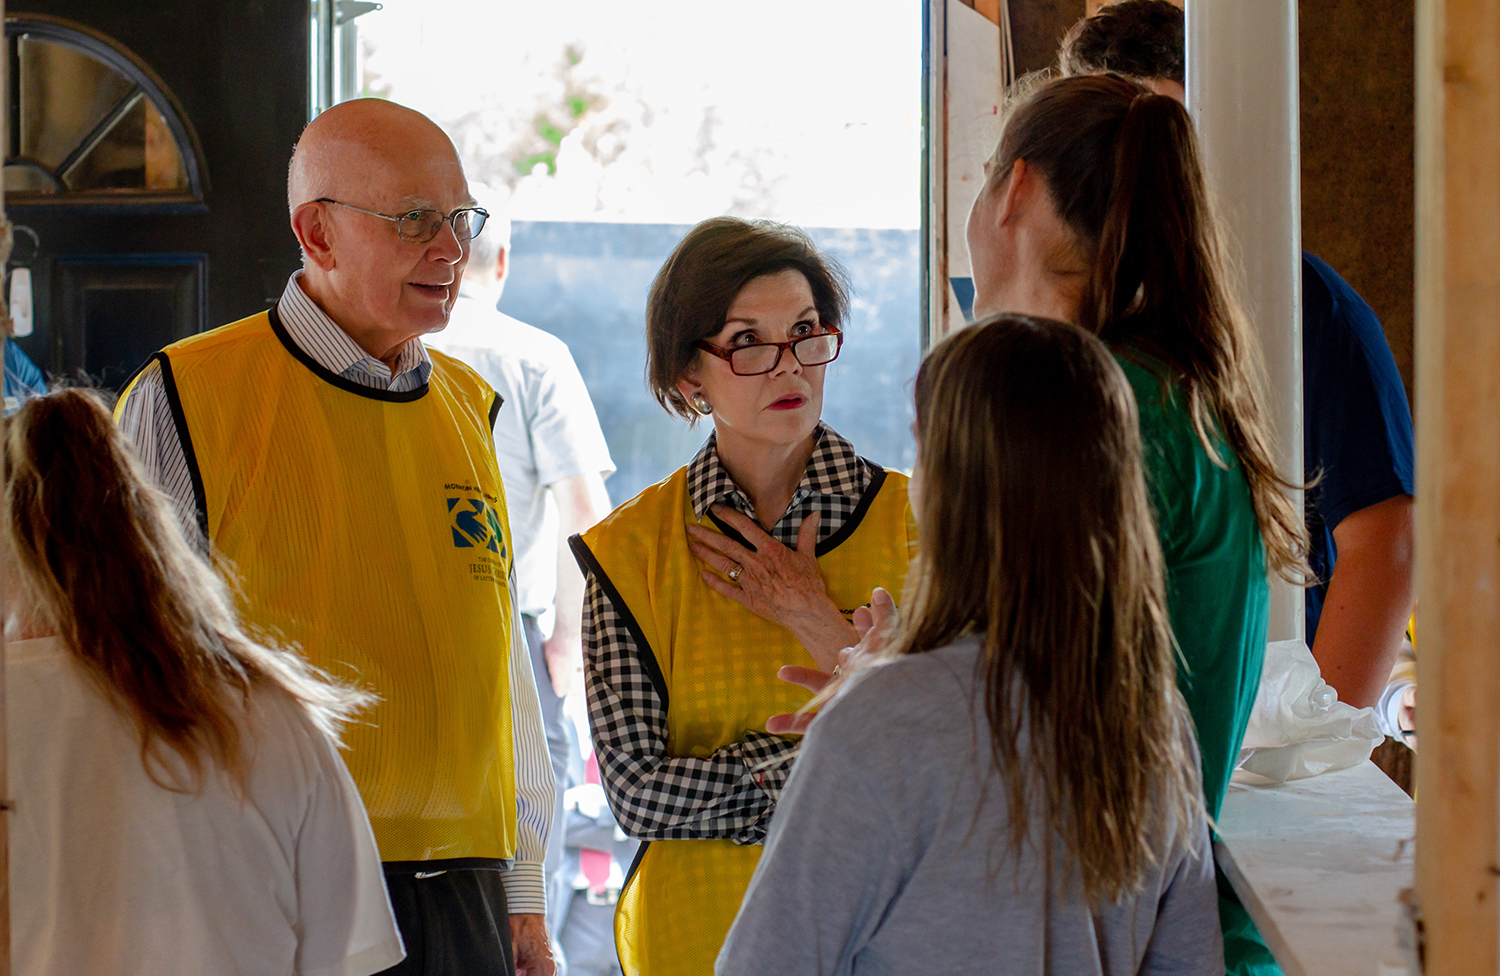 President Dallin H. Oaks, first counselor in the First Presidency of the Church, and his wife, Sister Kristen Oaks, listen as survivors of Hurricane Florence talk about the devastation that hit their North Carolina community.